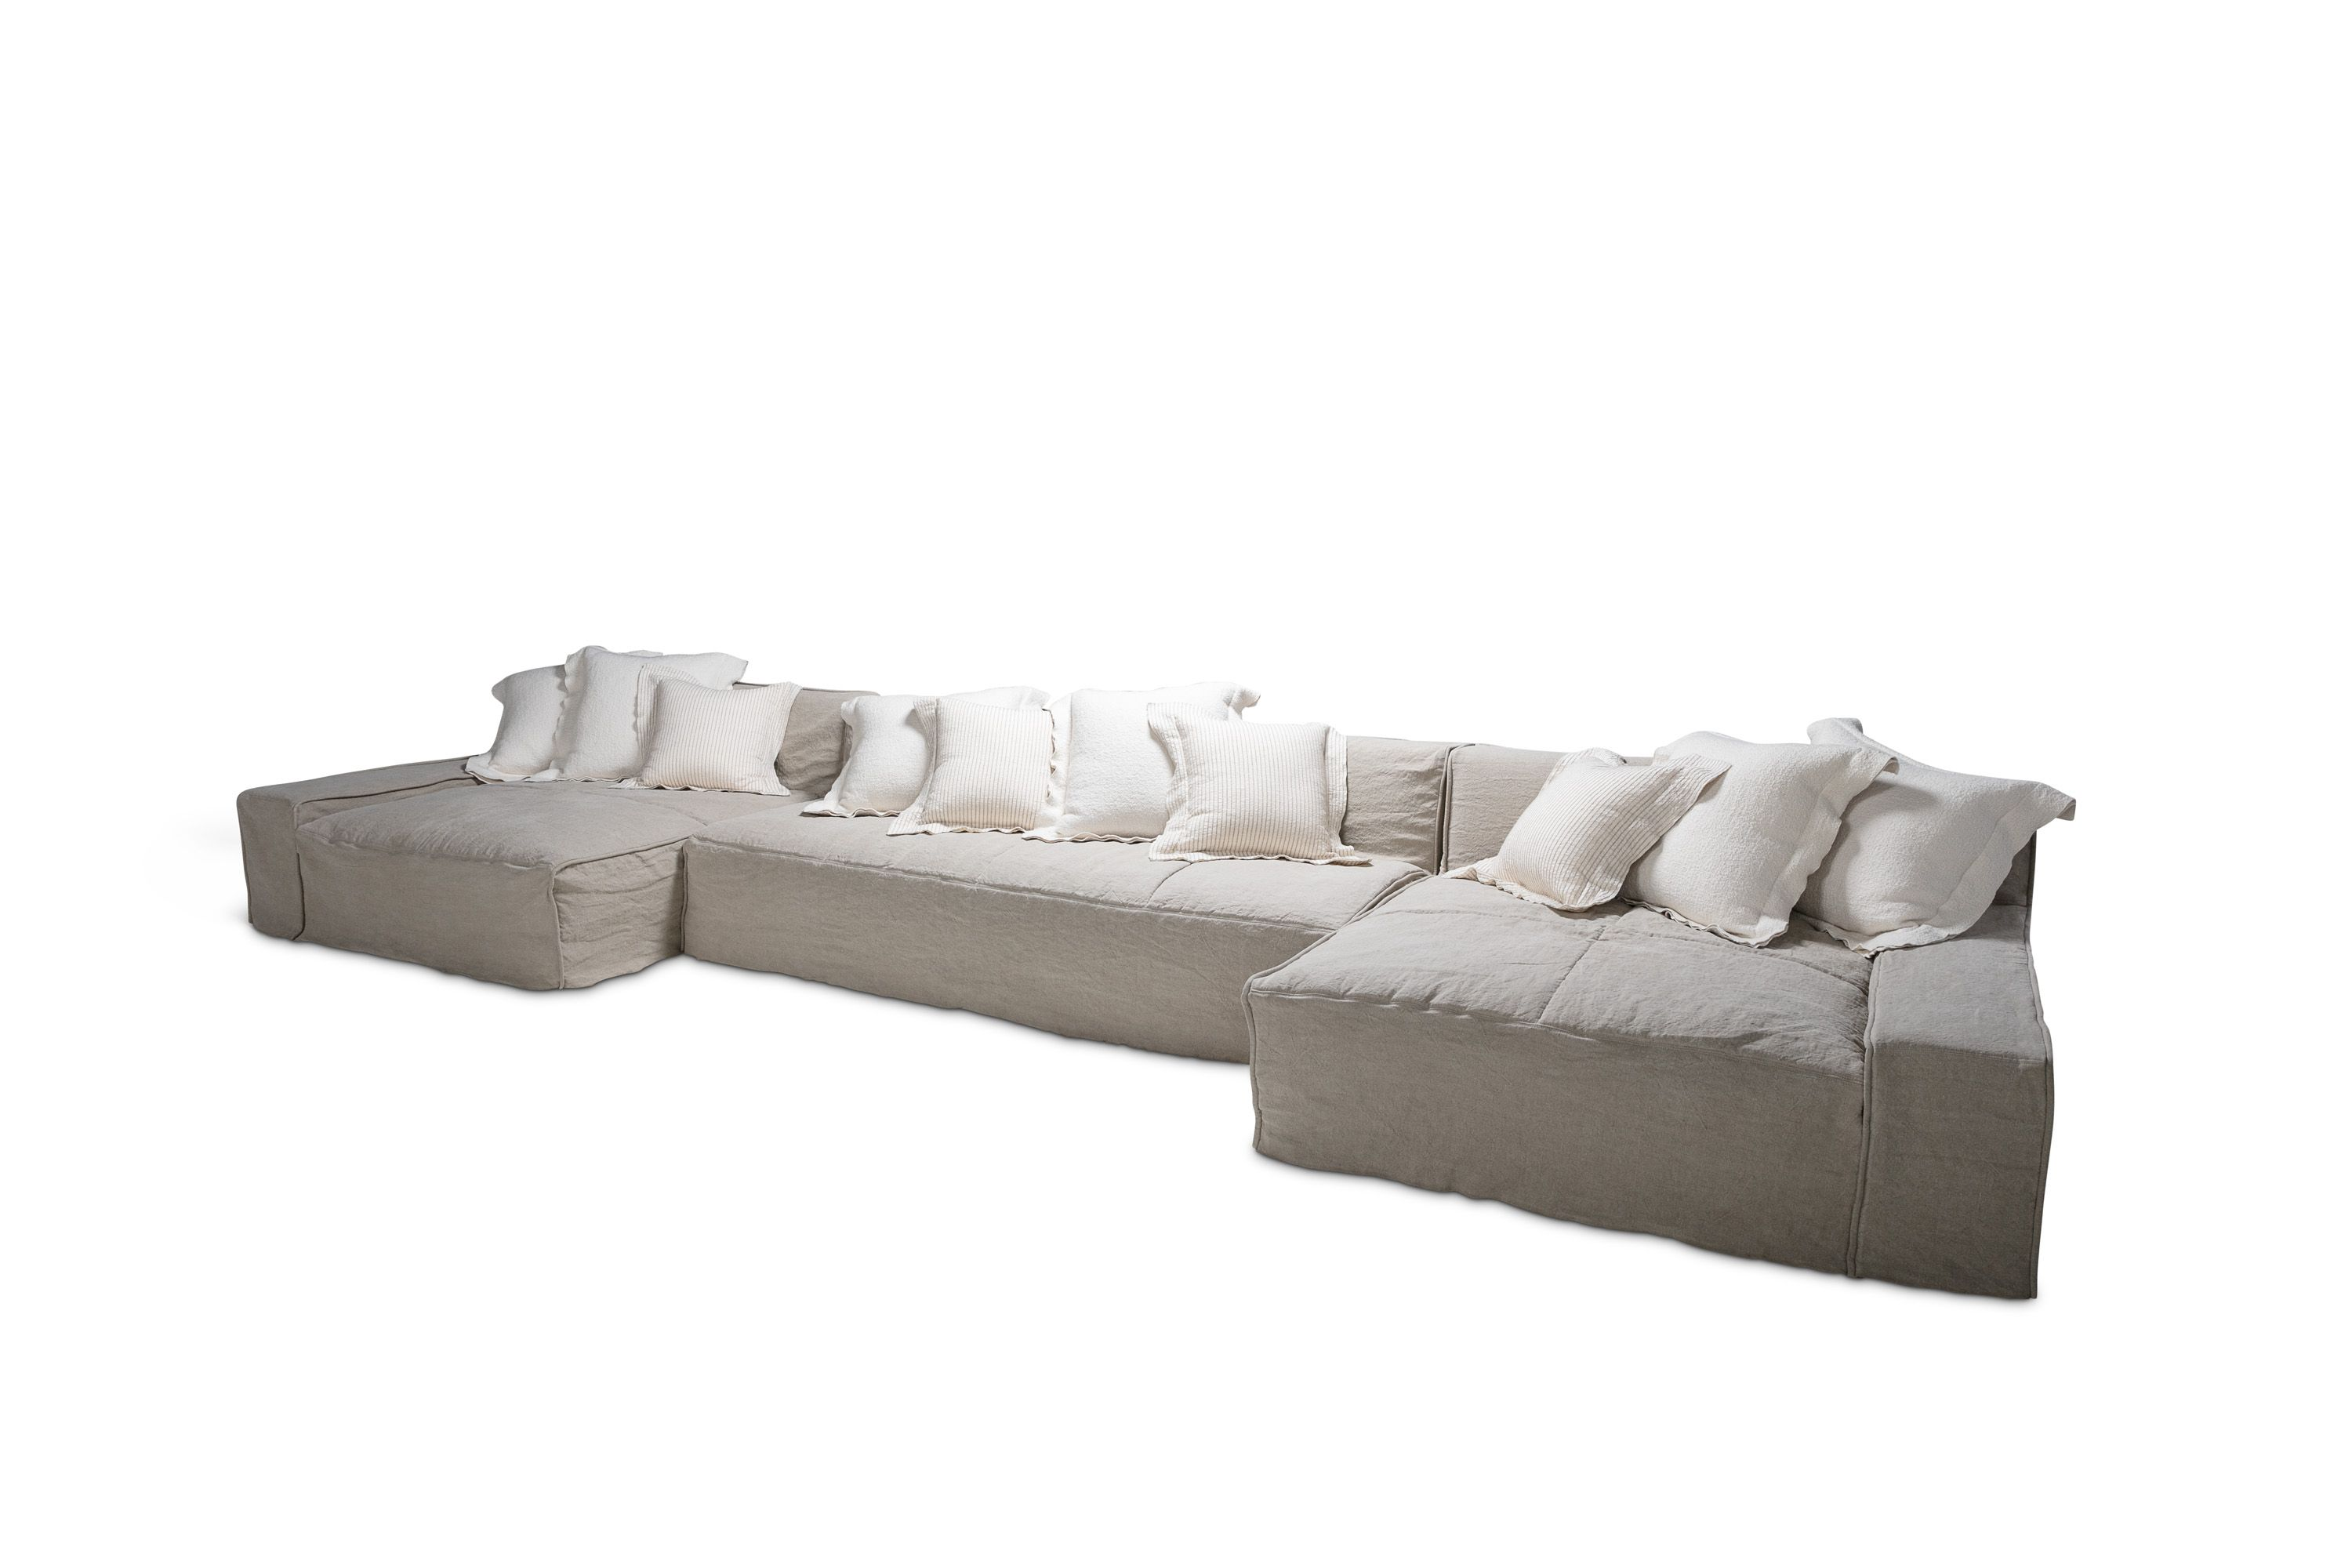 Esme Sectional in Bare Linen by Verellen